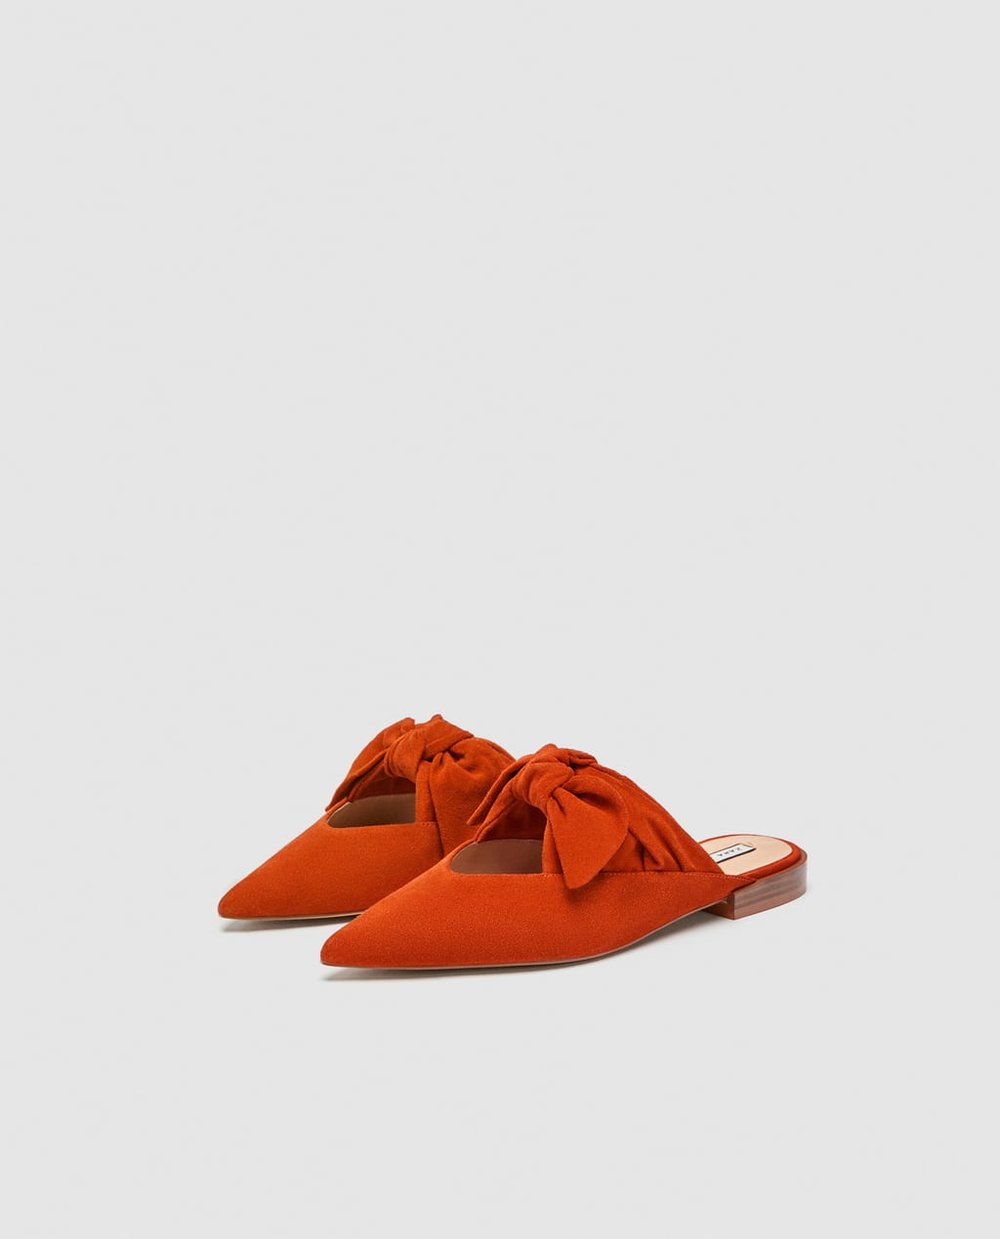 https://www.zara.com/ca/en/leather-mules-with-bow-detail-p13534301.html?v1=5970528&v2=796015